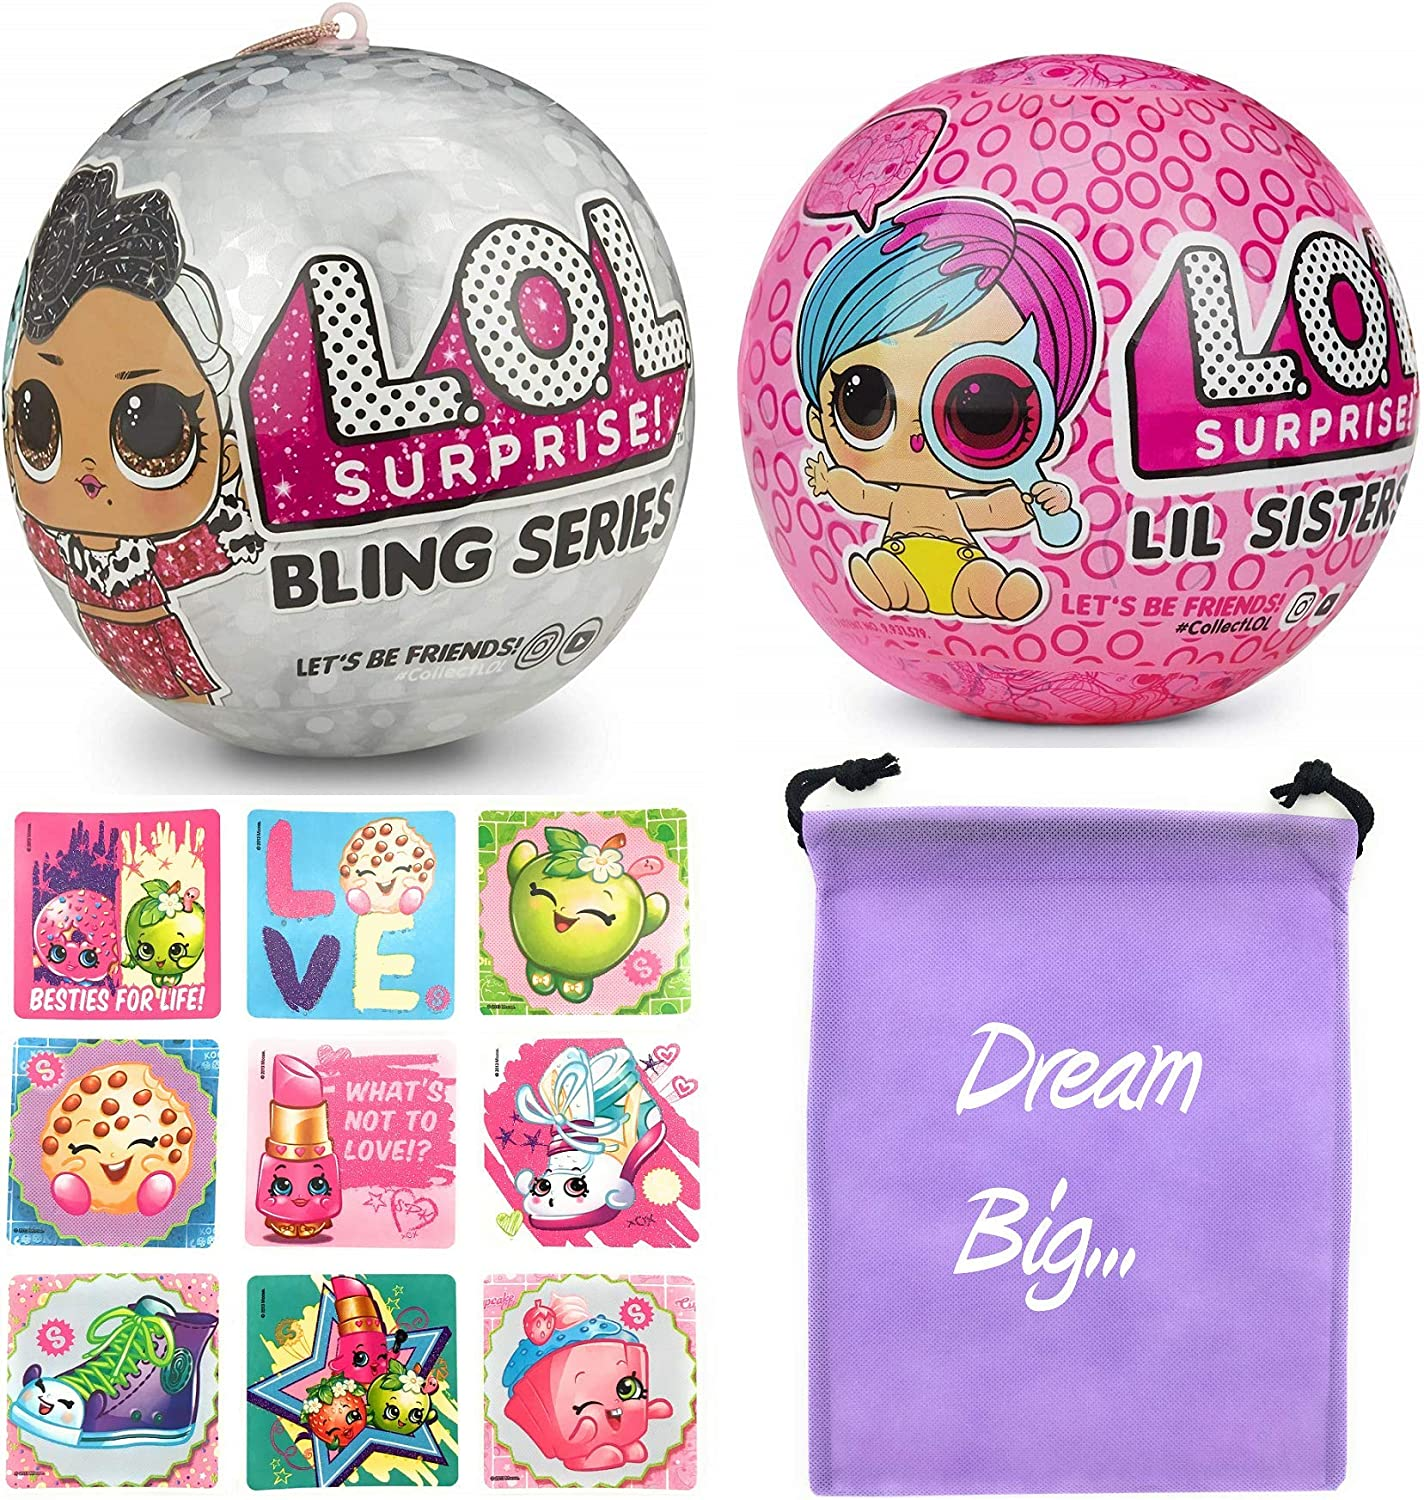 Bag FOR LOL Surprise LiL Sisters L.O.L GLITTER QUEEN doll toy SERIES 2 Gift